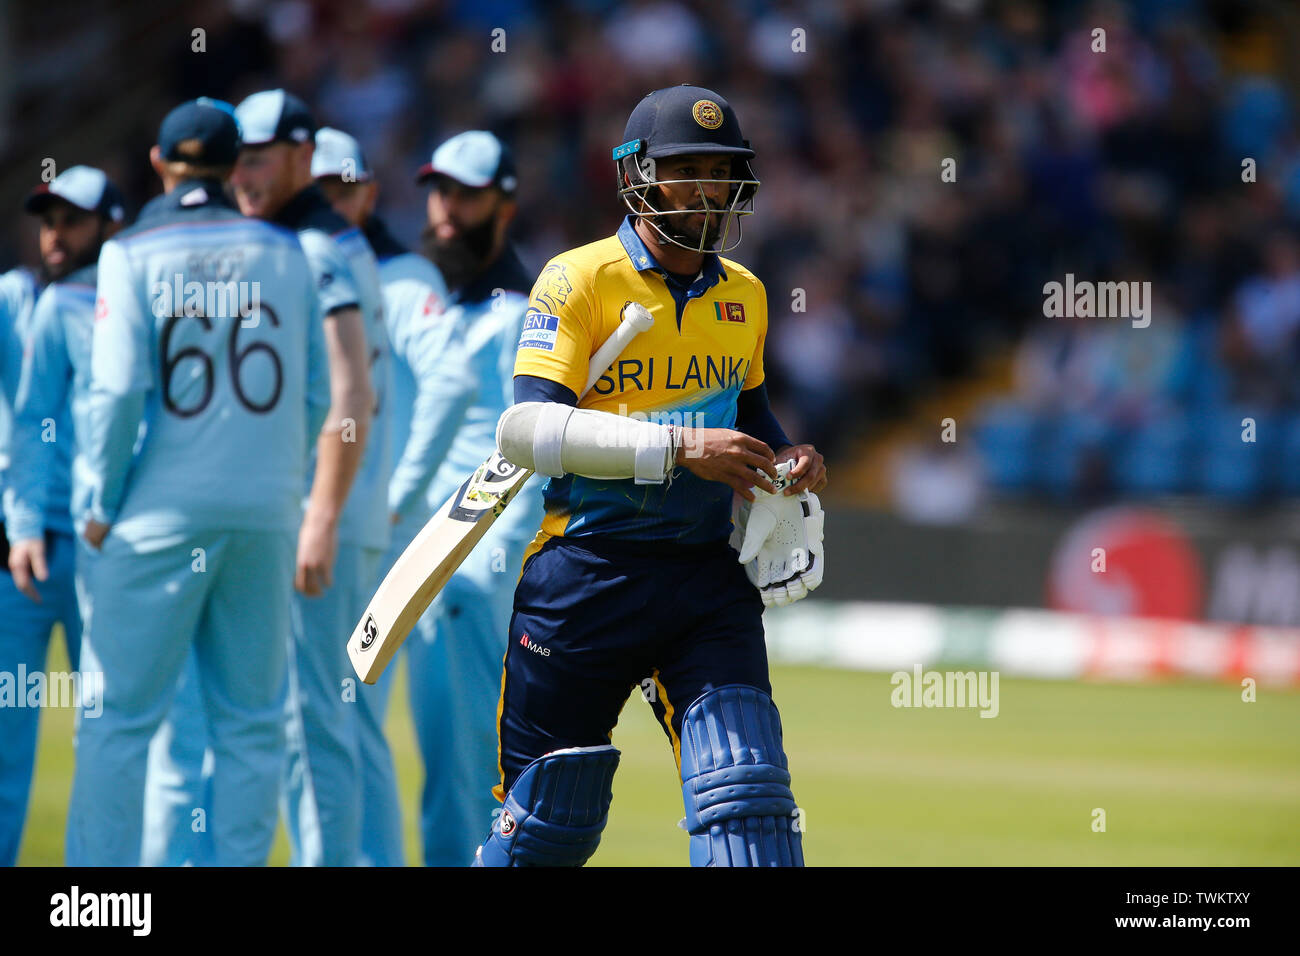 Emerald Headingley, Leeds, Yorkshire, UK. 21st June, 2019. ICC World Cup Cricket, England versus Sri Lanka; Sri Lanka captain Dimuth Karunaratne walks back to the pavilion caught behind for 1 off the bowling of Jofra Archer of England Credit: Action Plus Sports/Alamy Live News Stock Photo